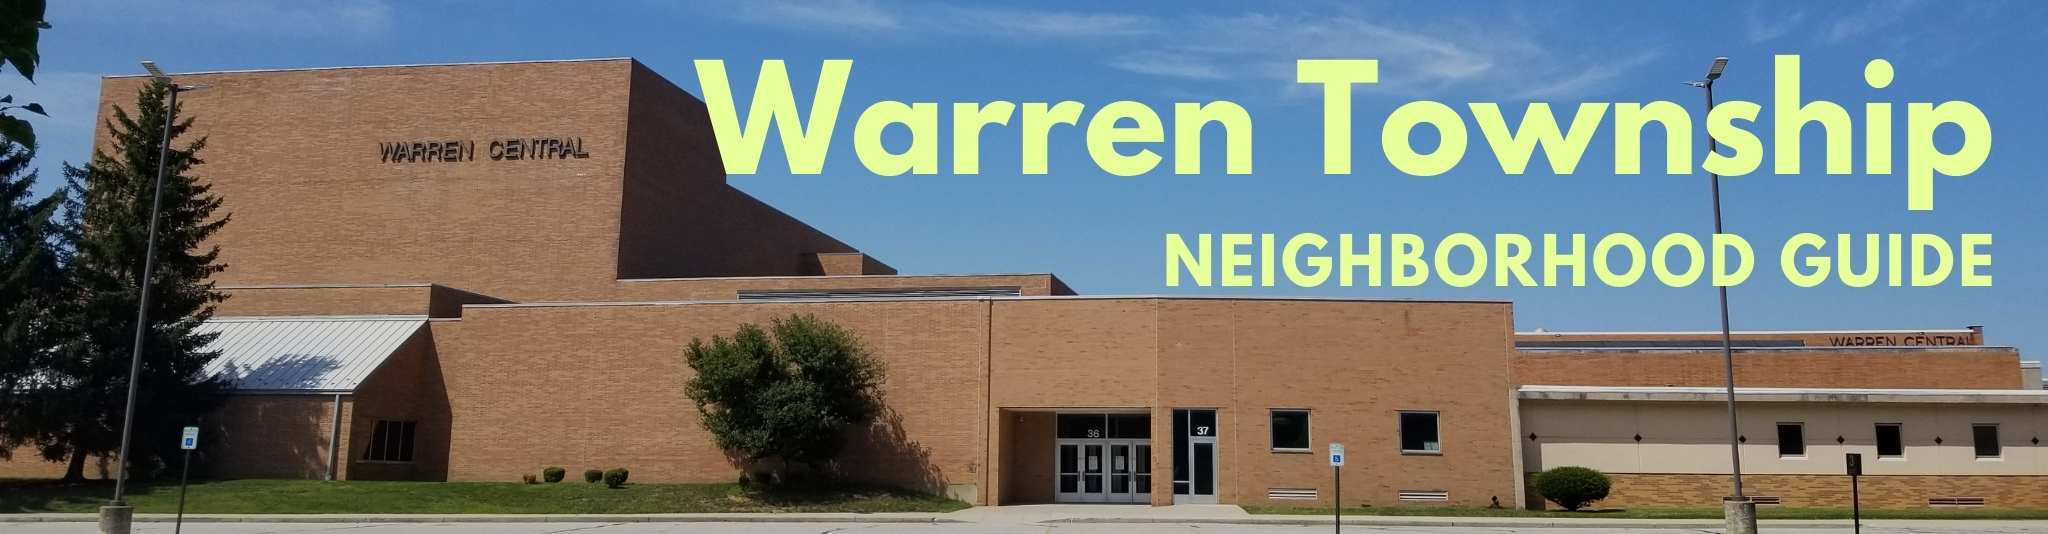 Warren Township is known for Warren Central Highschool, located on the city's East side.